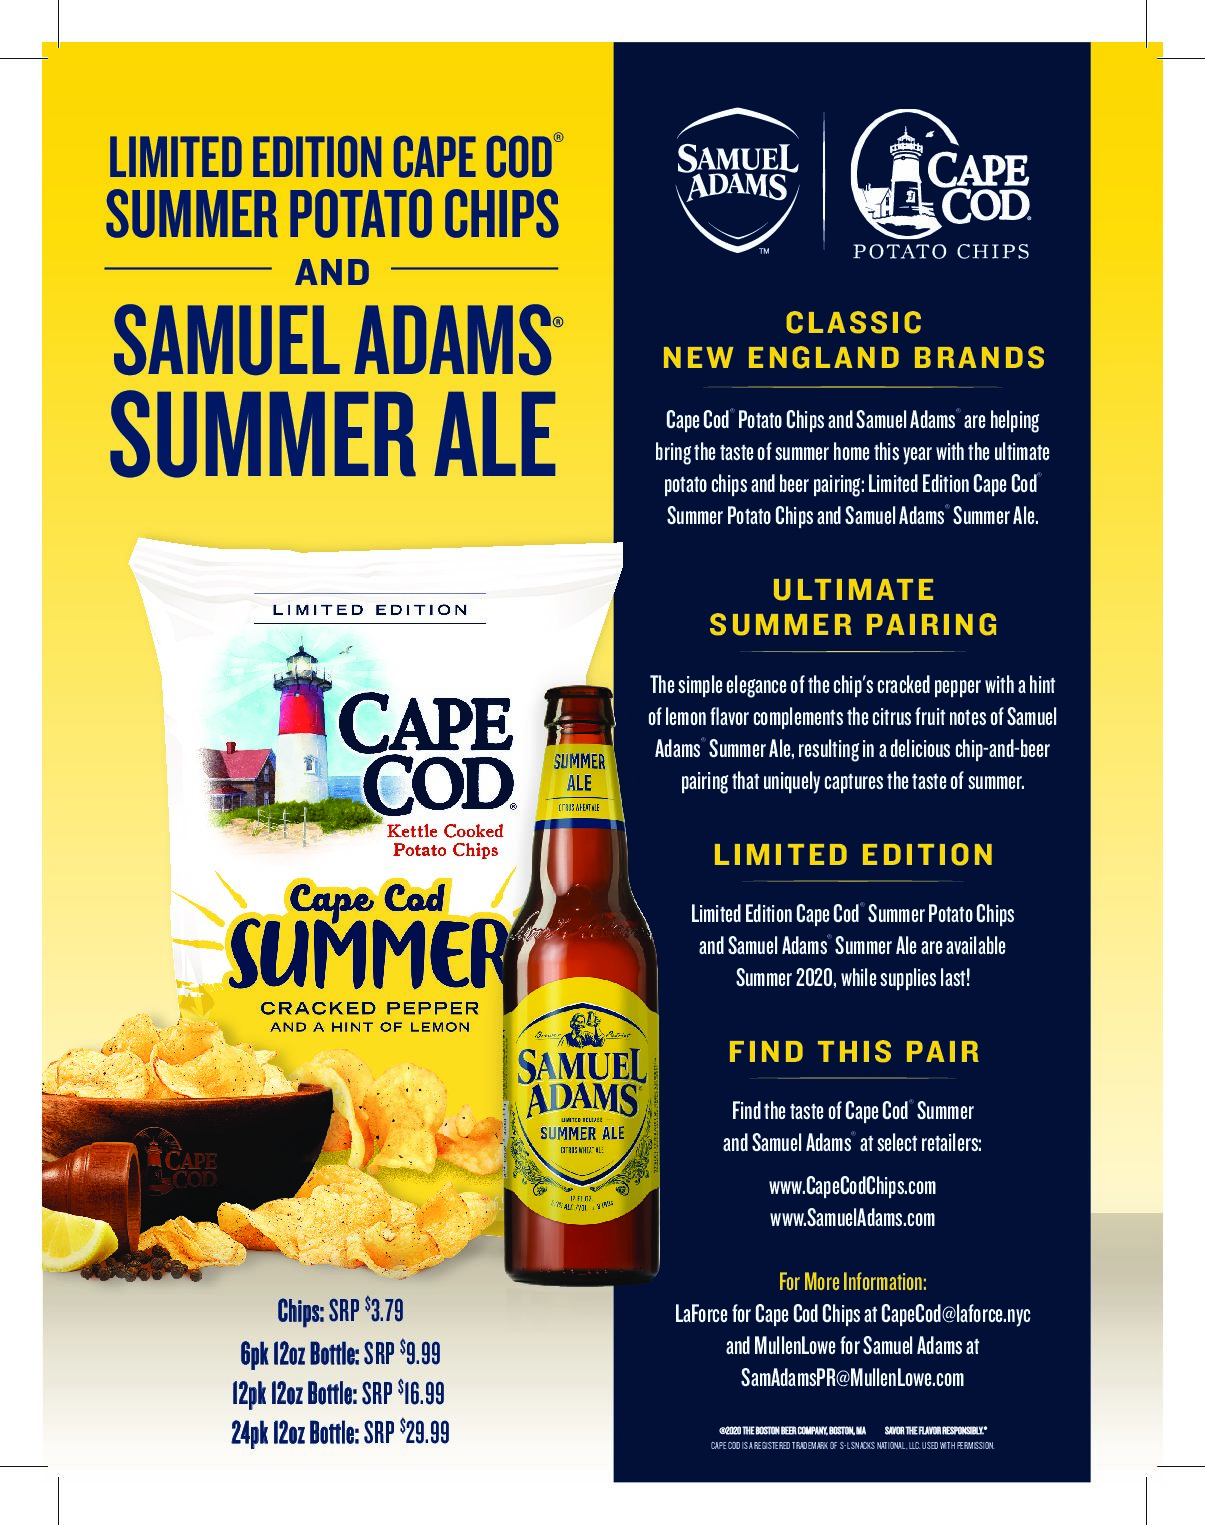 Samuel Adams and Cape Cod Potato Chips – Perfect Pairing